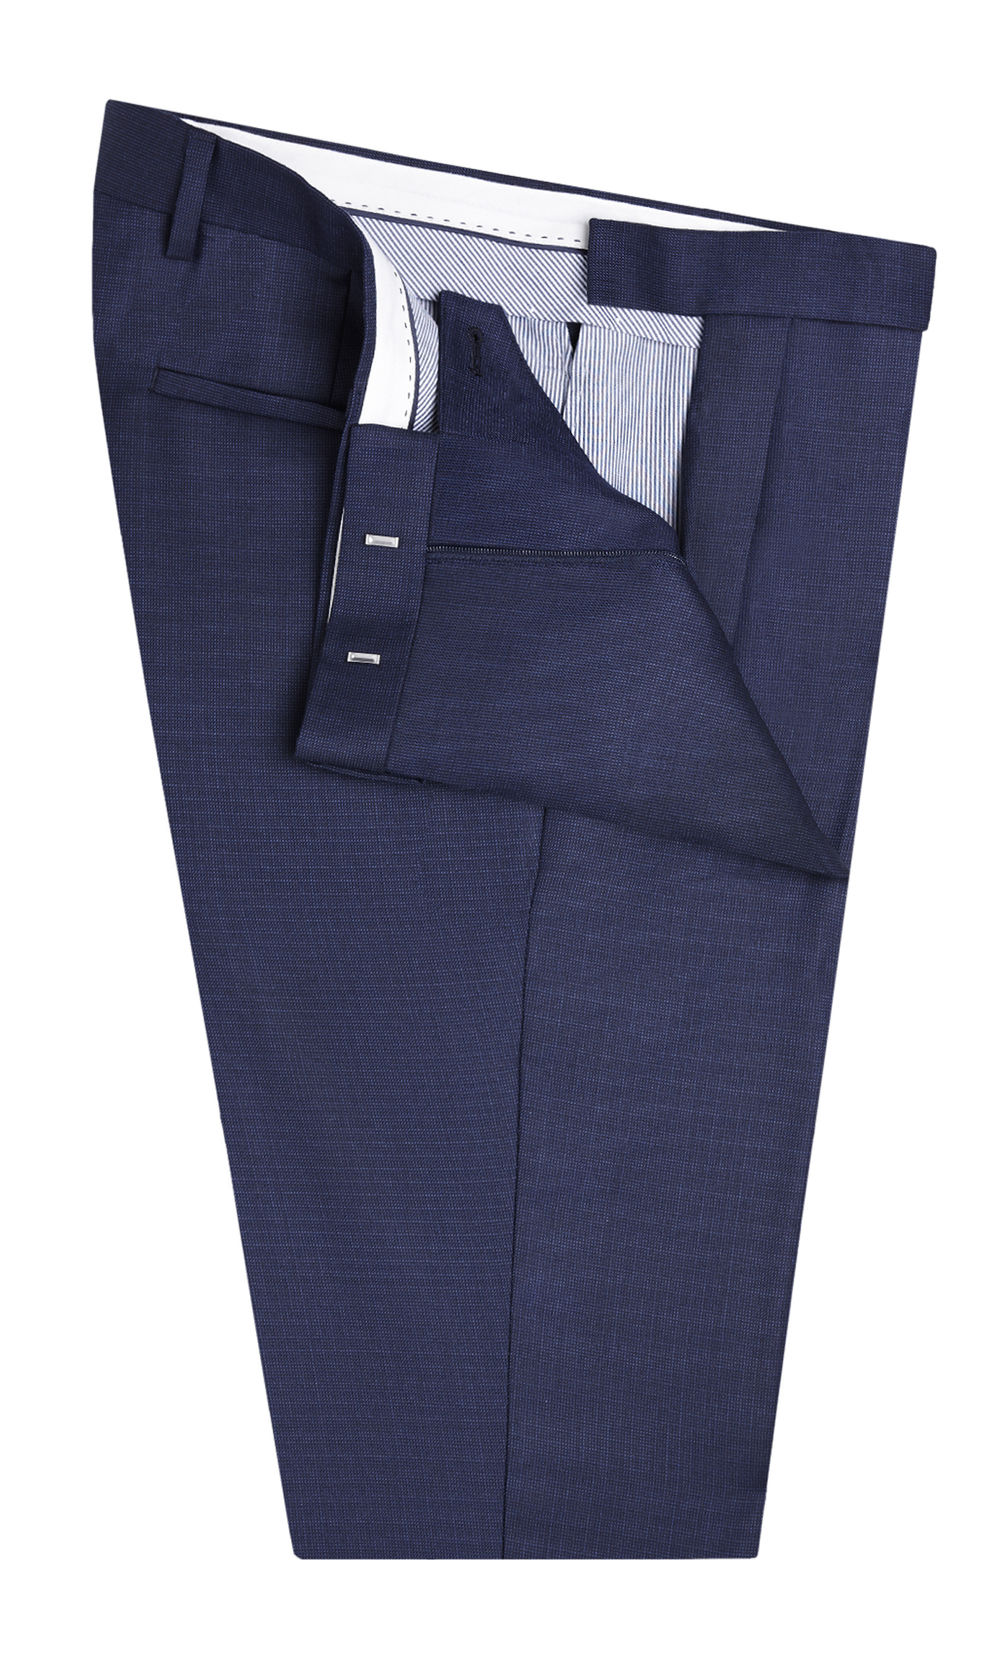 shop mens bespoke office & Suit trouser online. Mens bespoke suit wear in Lagos Nigeria